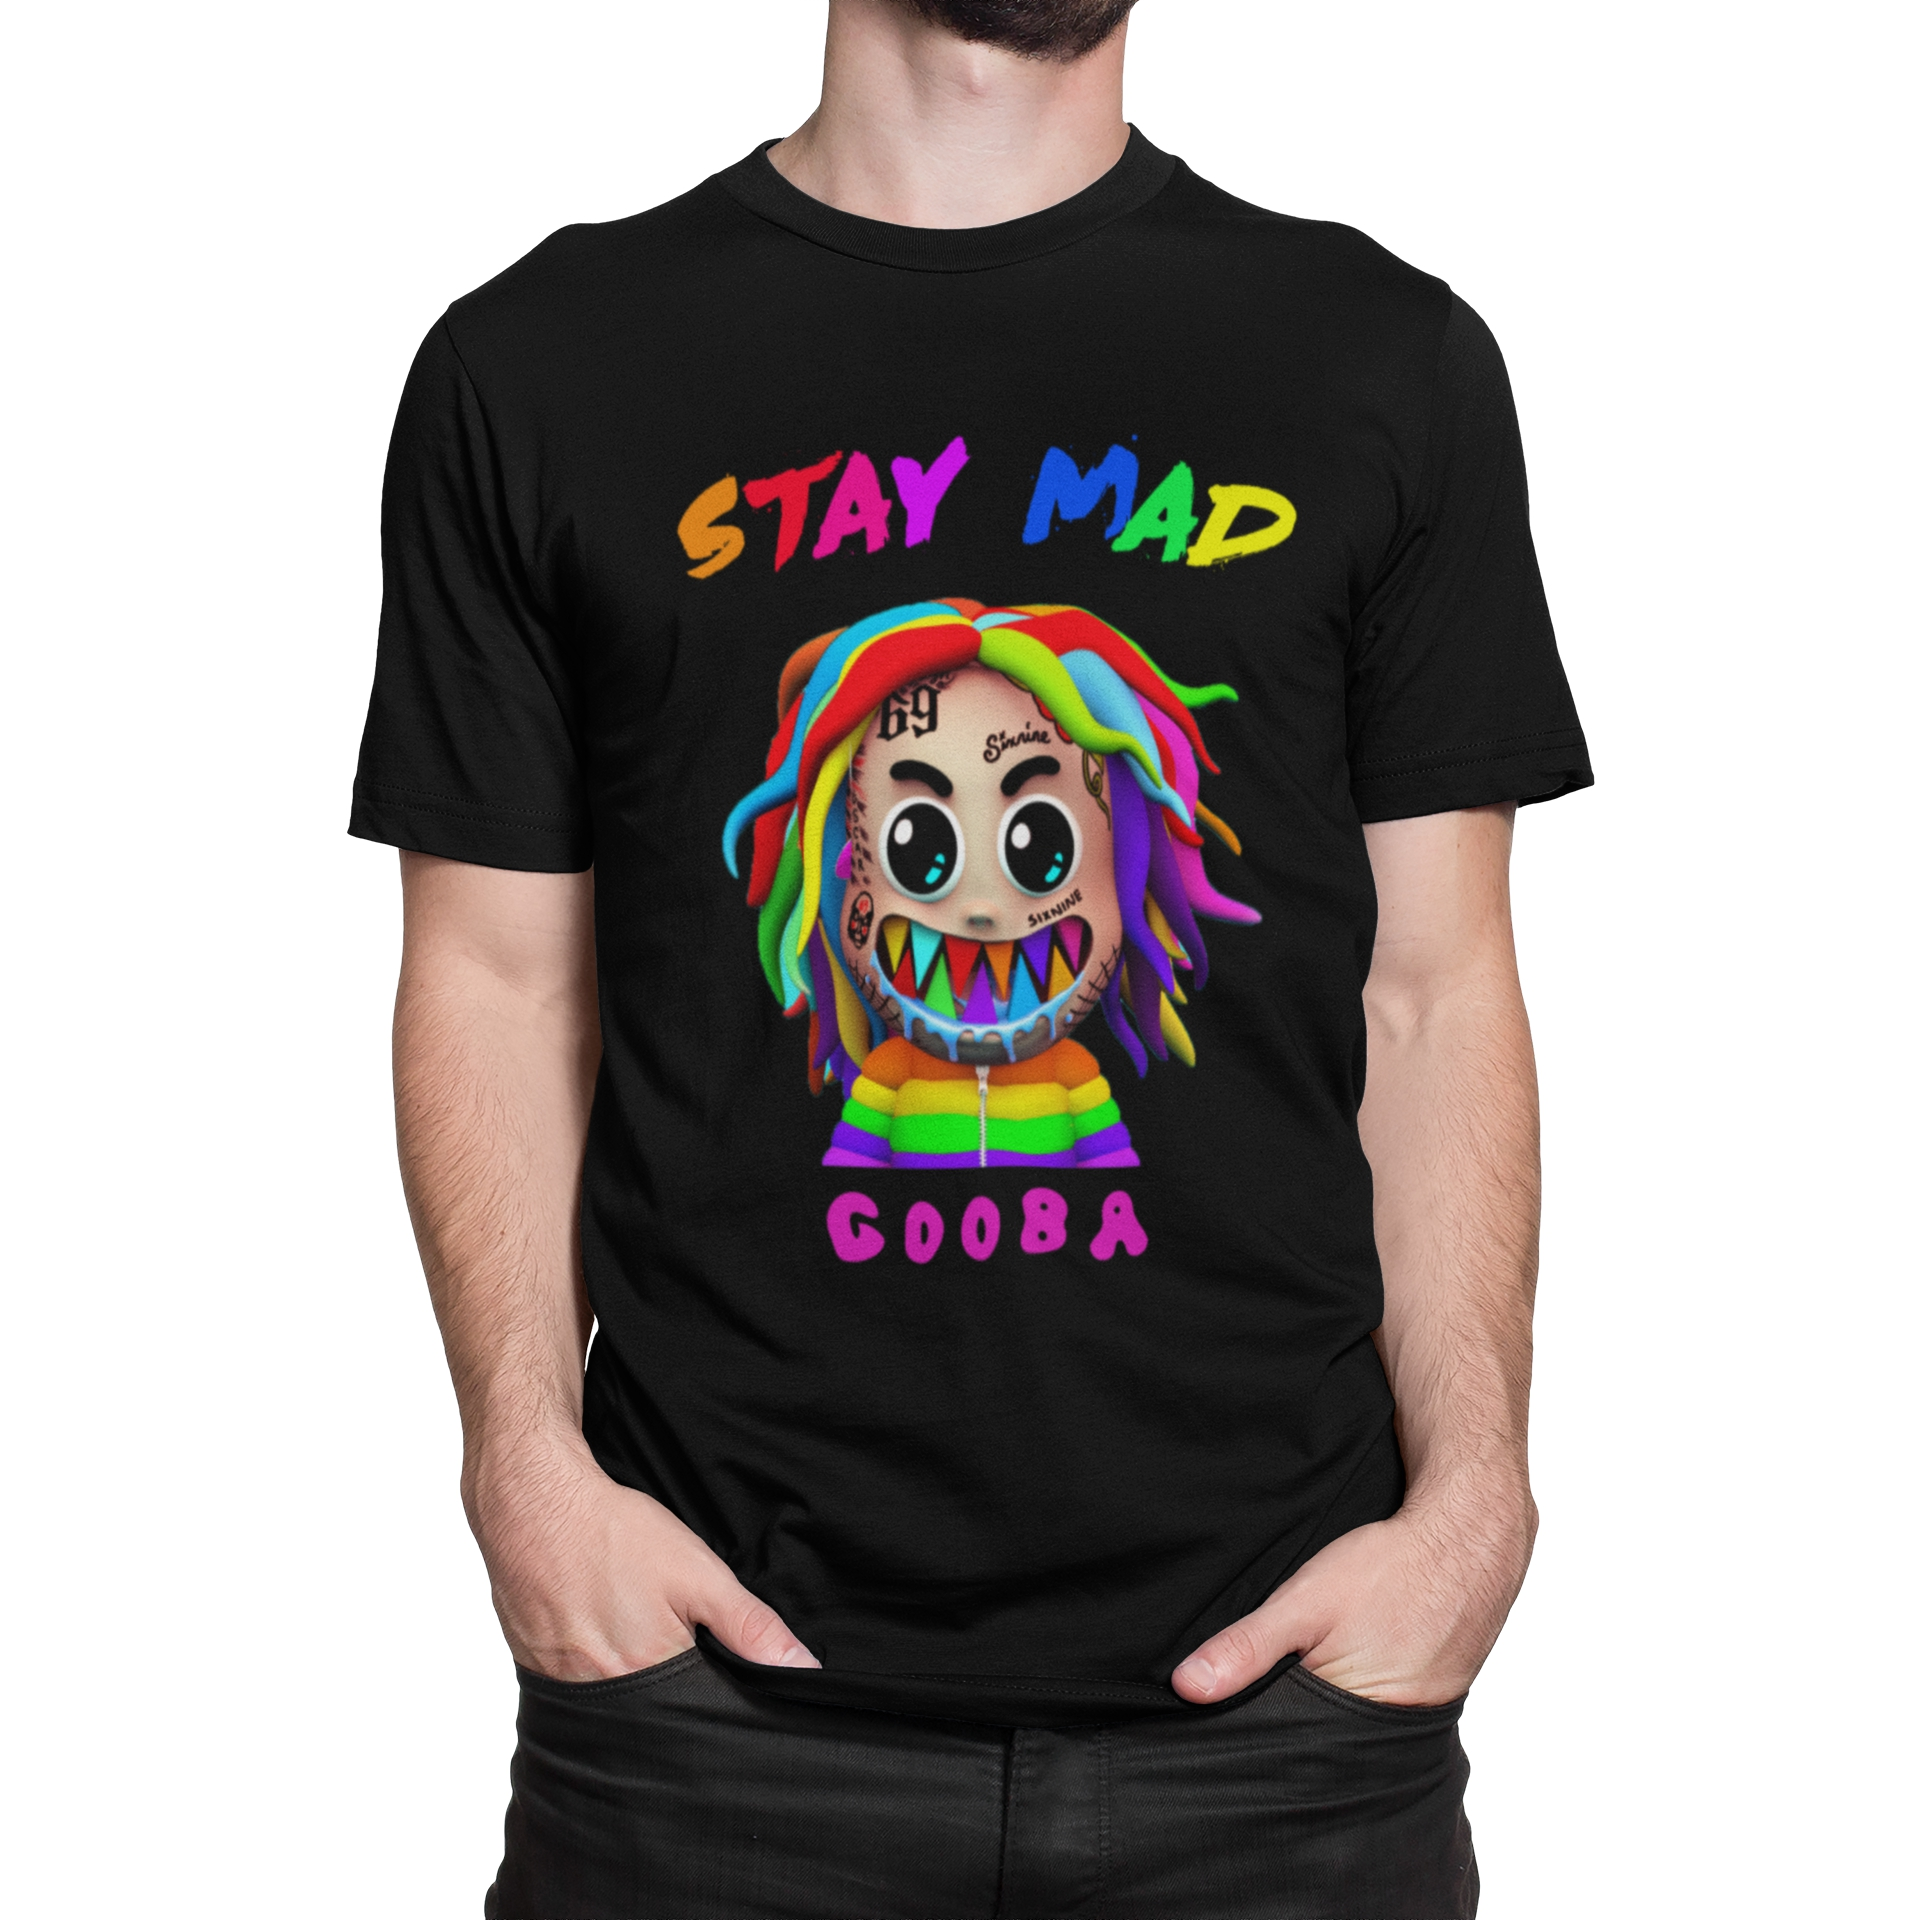 6IX9INE GOOBA Rapper T-shirt Short Sleeve Cool Hip Pop Song Casual Fans Summer O-neck Printed Cotton Pink Black White Street image